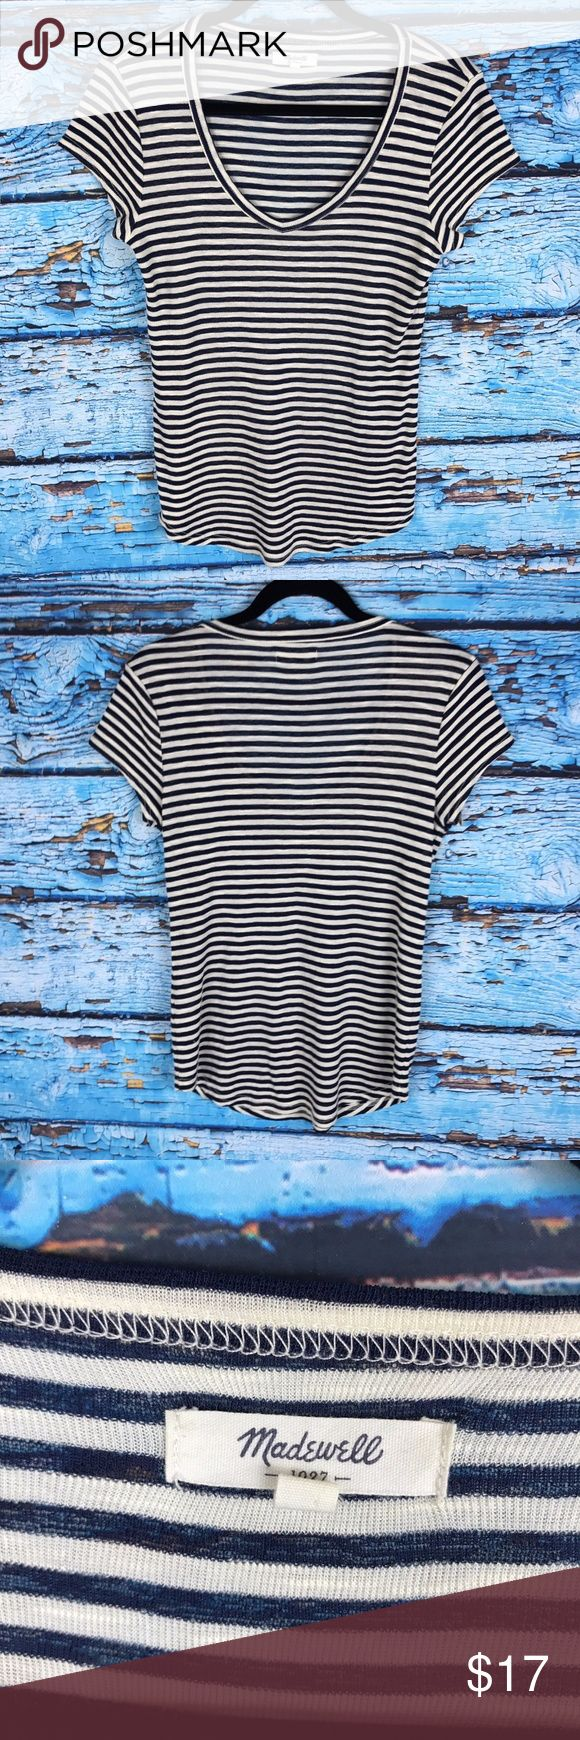 Madewell Nautical V Neck Tee Short Sleeve Striped Madewell Nautical V Neck Tee Short Sleeve Sz Medium Navy Blue Striped Top Shirt Size Medium Shirt is very stretchy and comfy! Armpit to armpit 16 1/2 inches Total length from top of shoulder to bottom hem 25 inches Madewell Tops Blouses